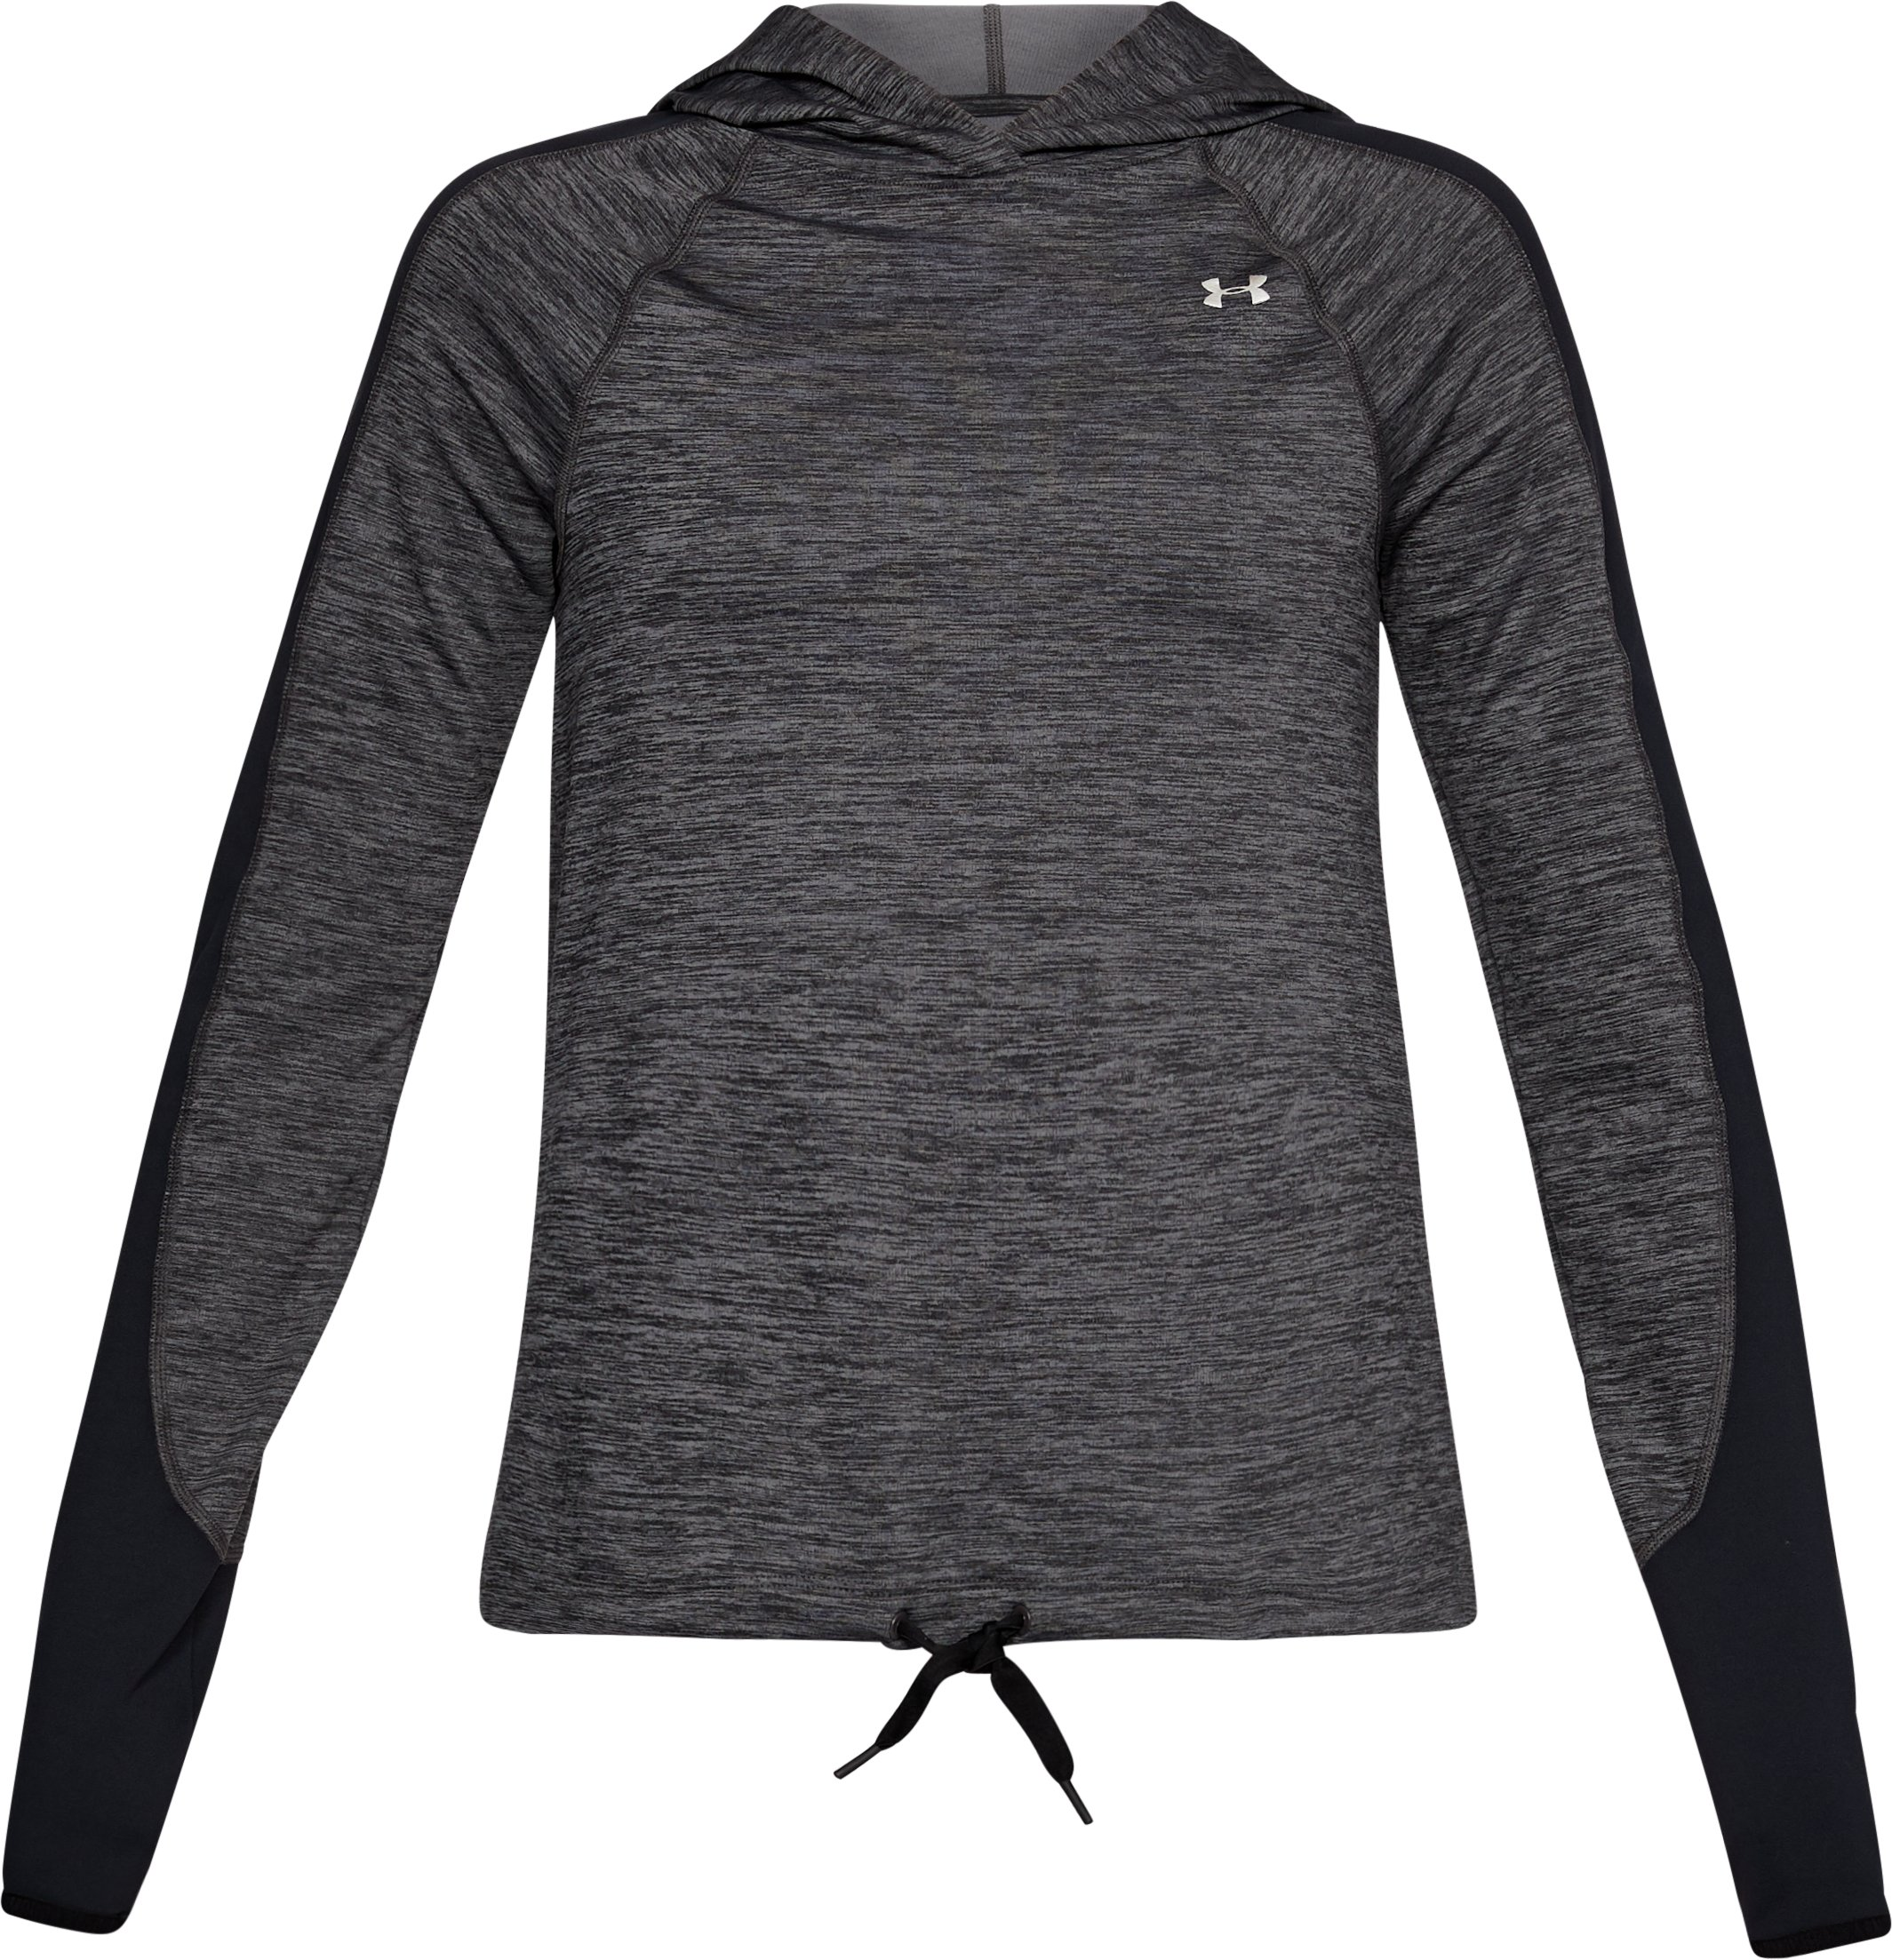 Women's ColdGear® Armour Pullover, CHARCOAL FULL HEATHER, undefined